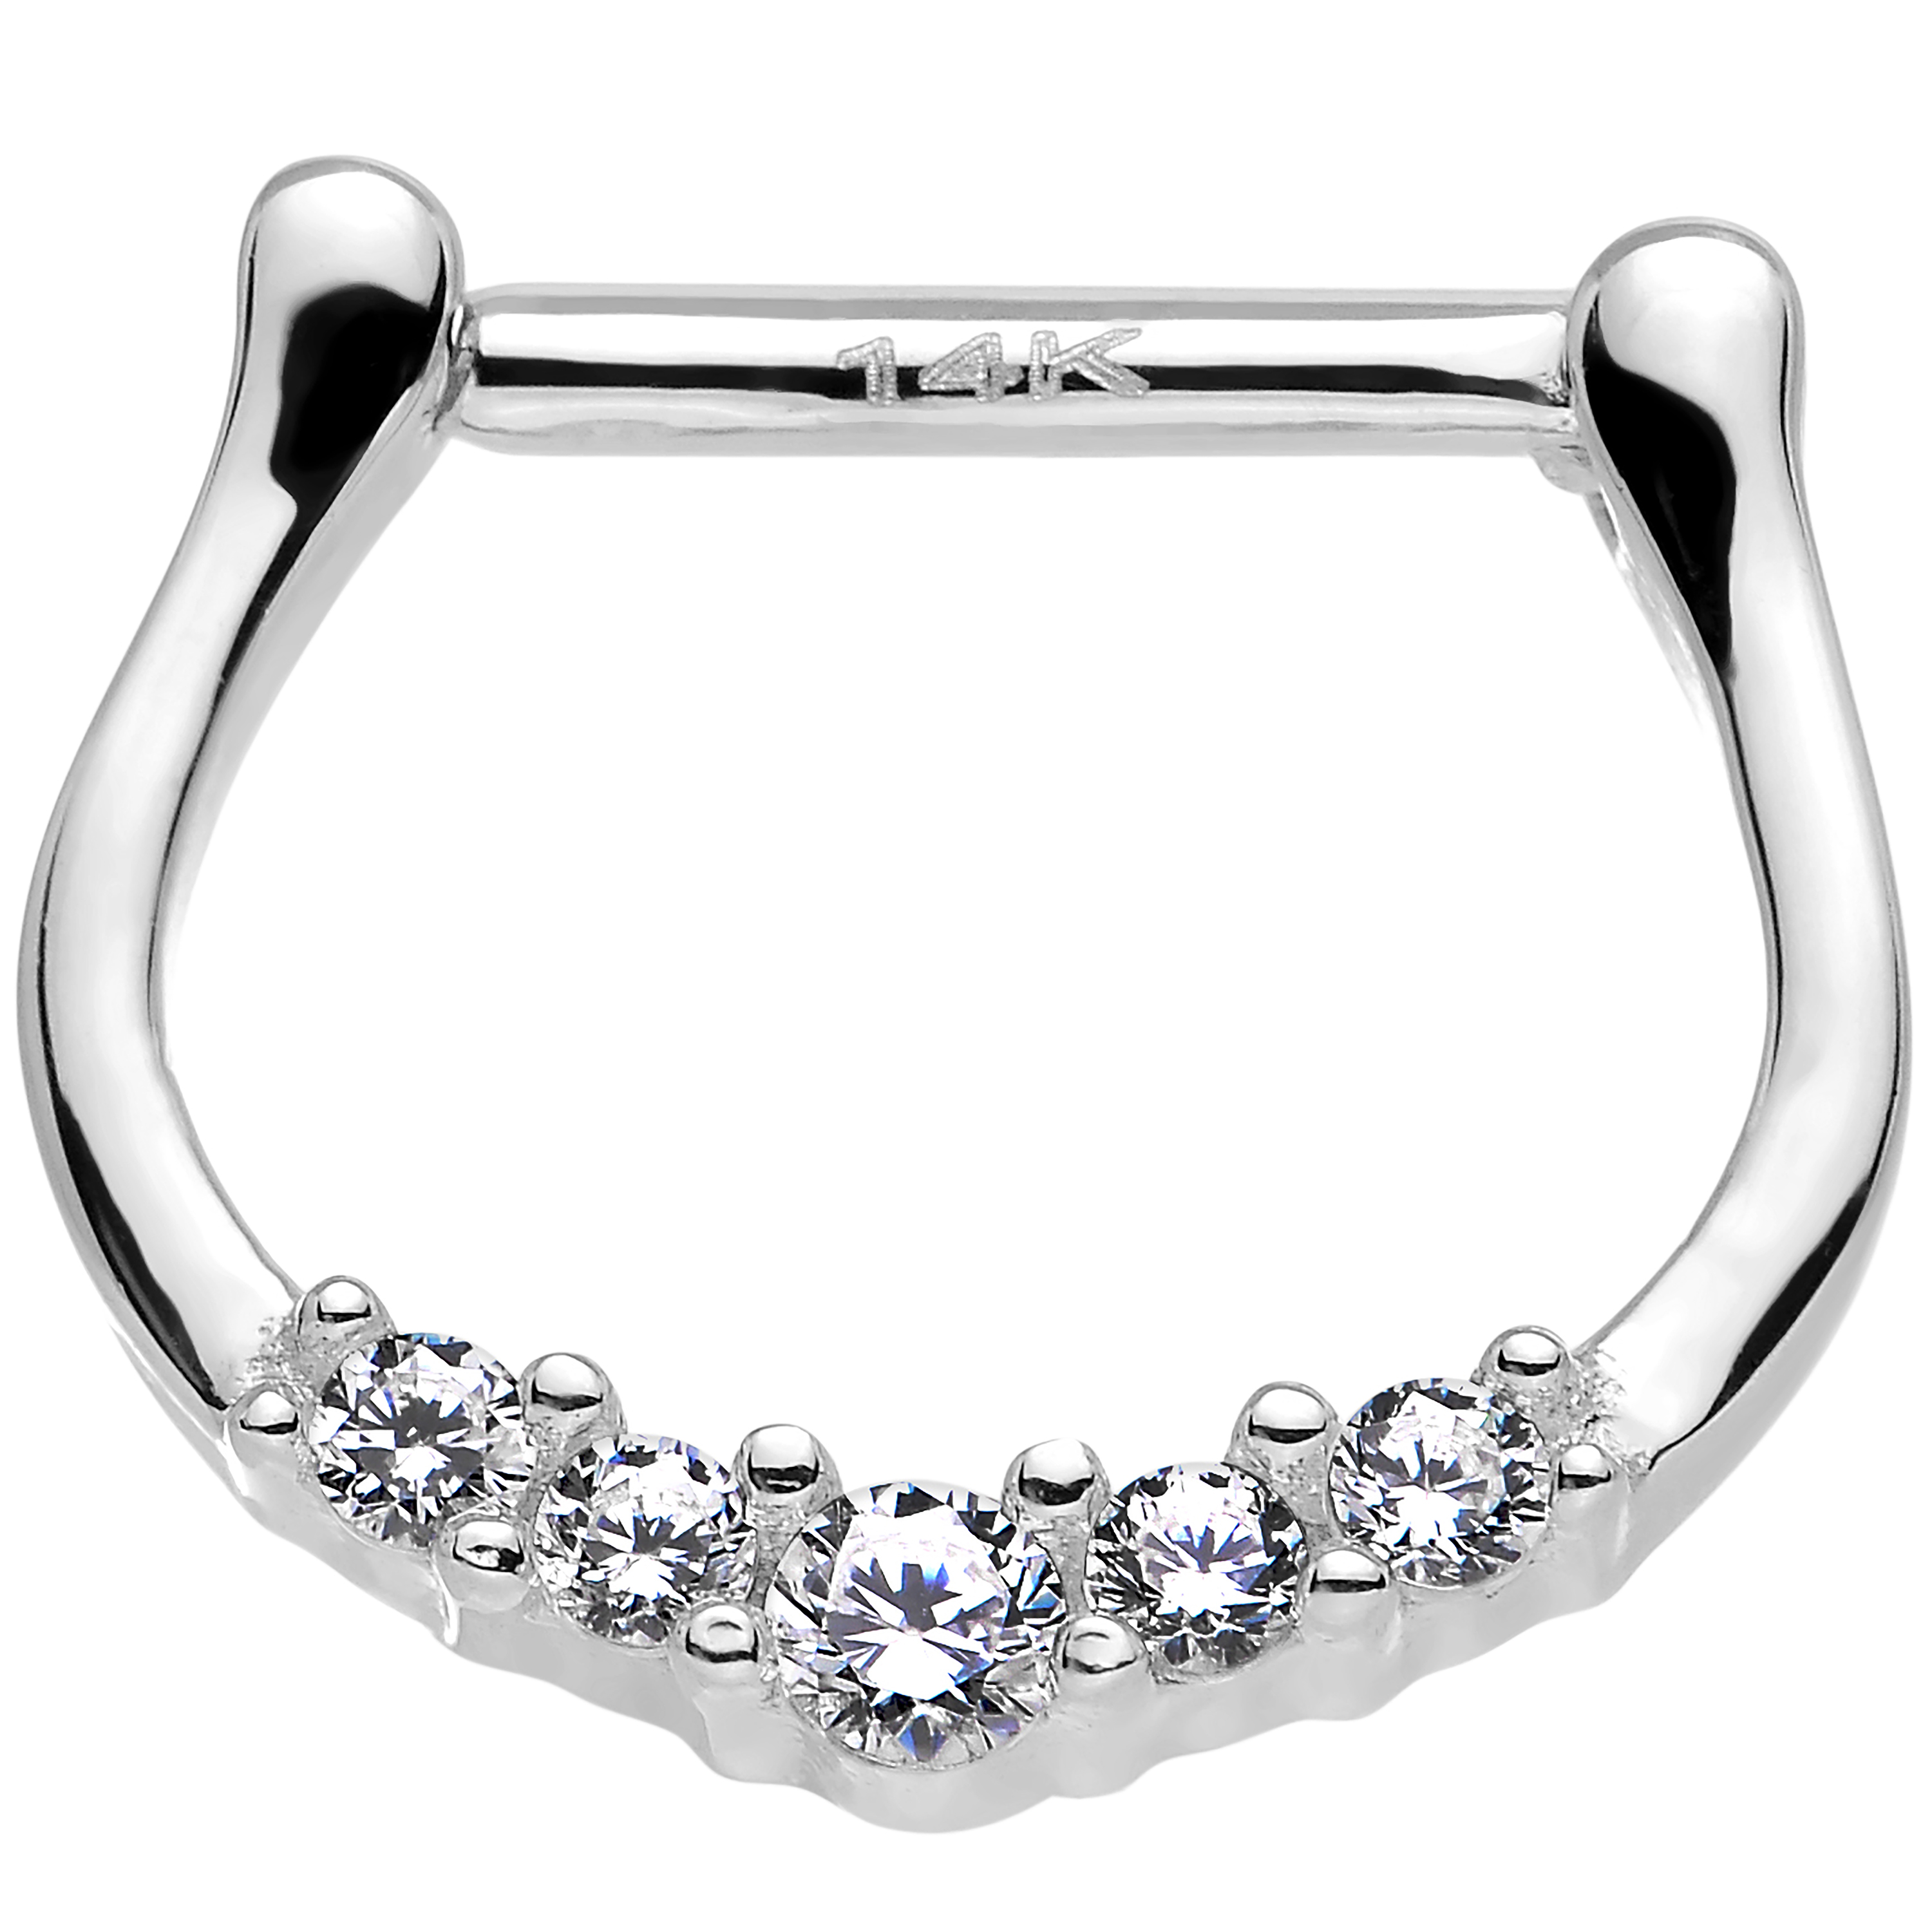 Body Candy 14k White Gold Clear Bijou Septum Clicker 16 G...